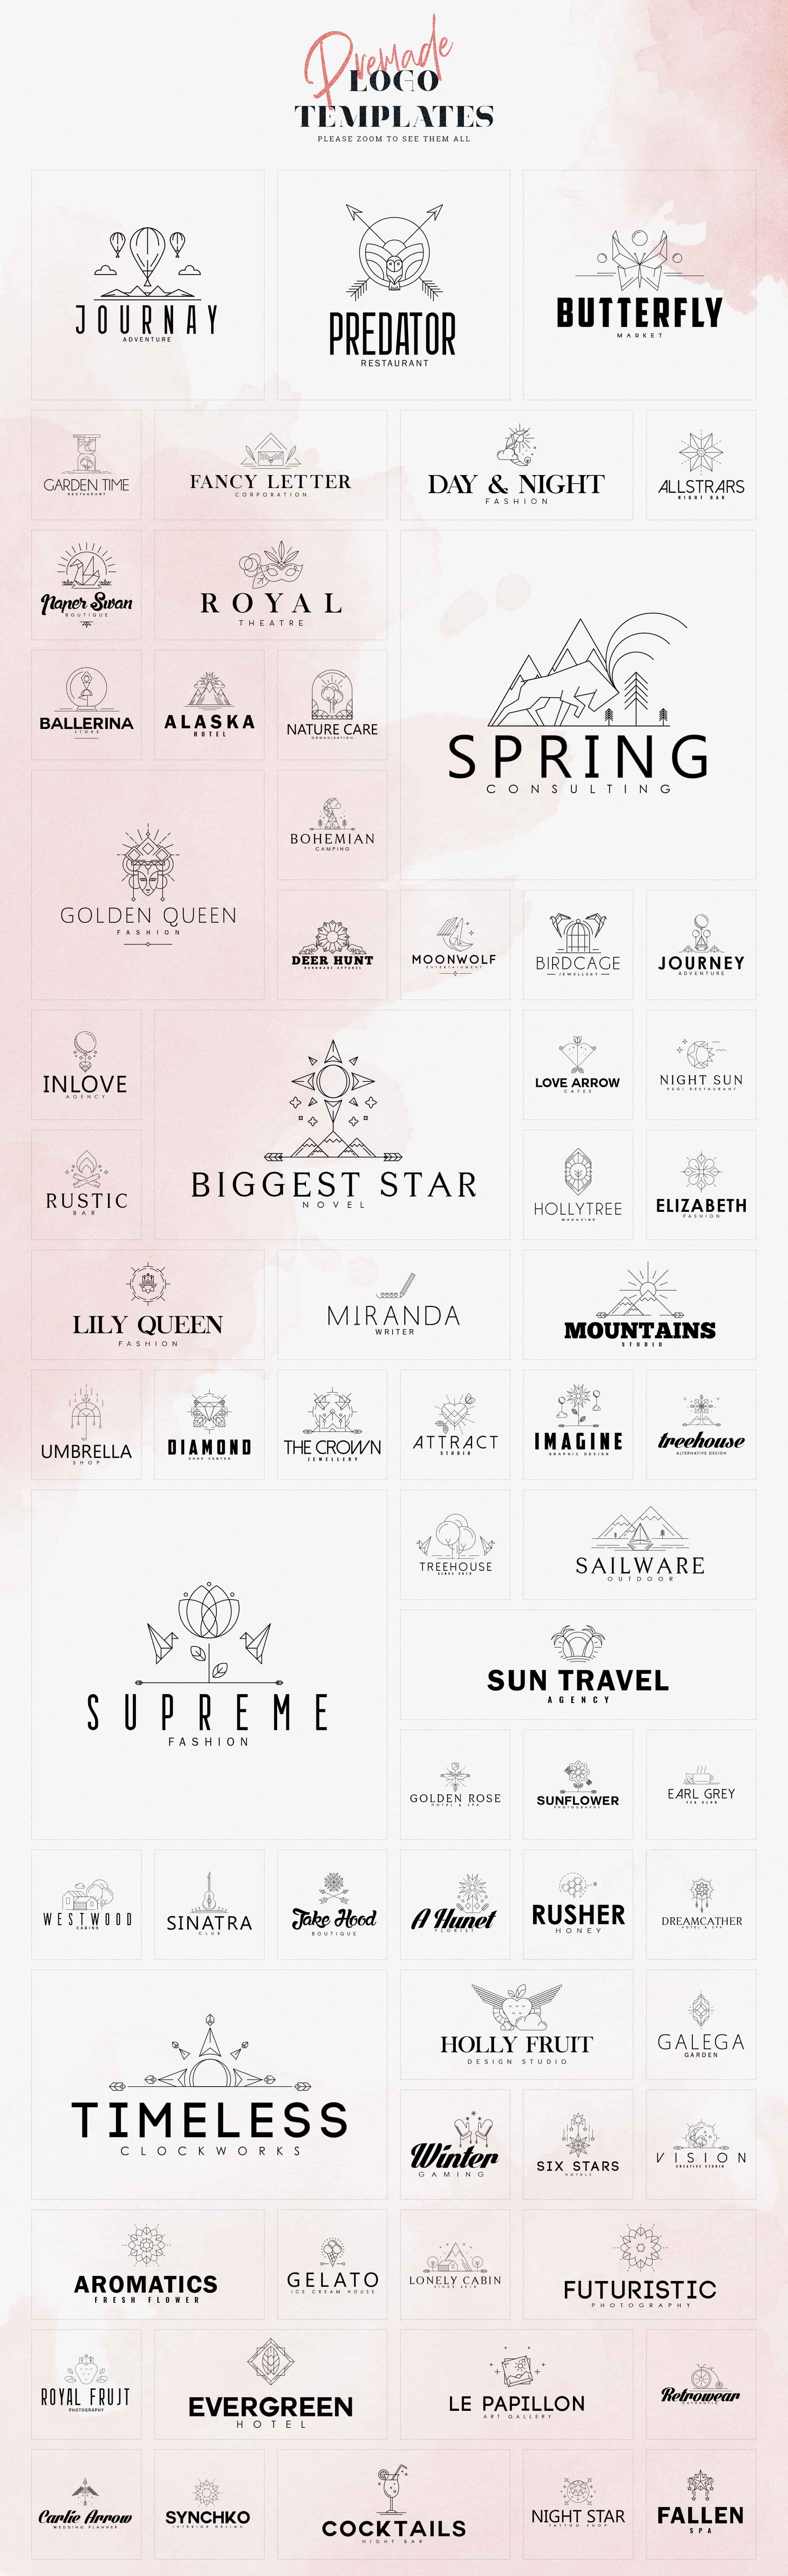 This collection has adorable logo variations that reflect the idea behind the template.